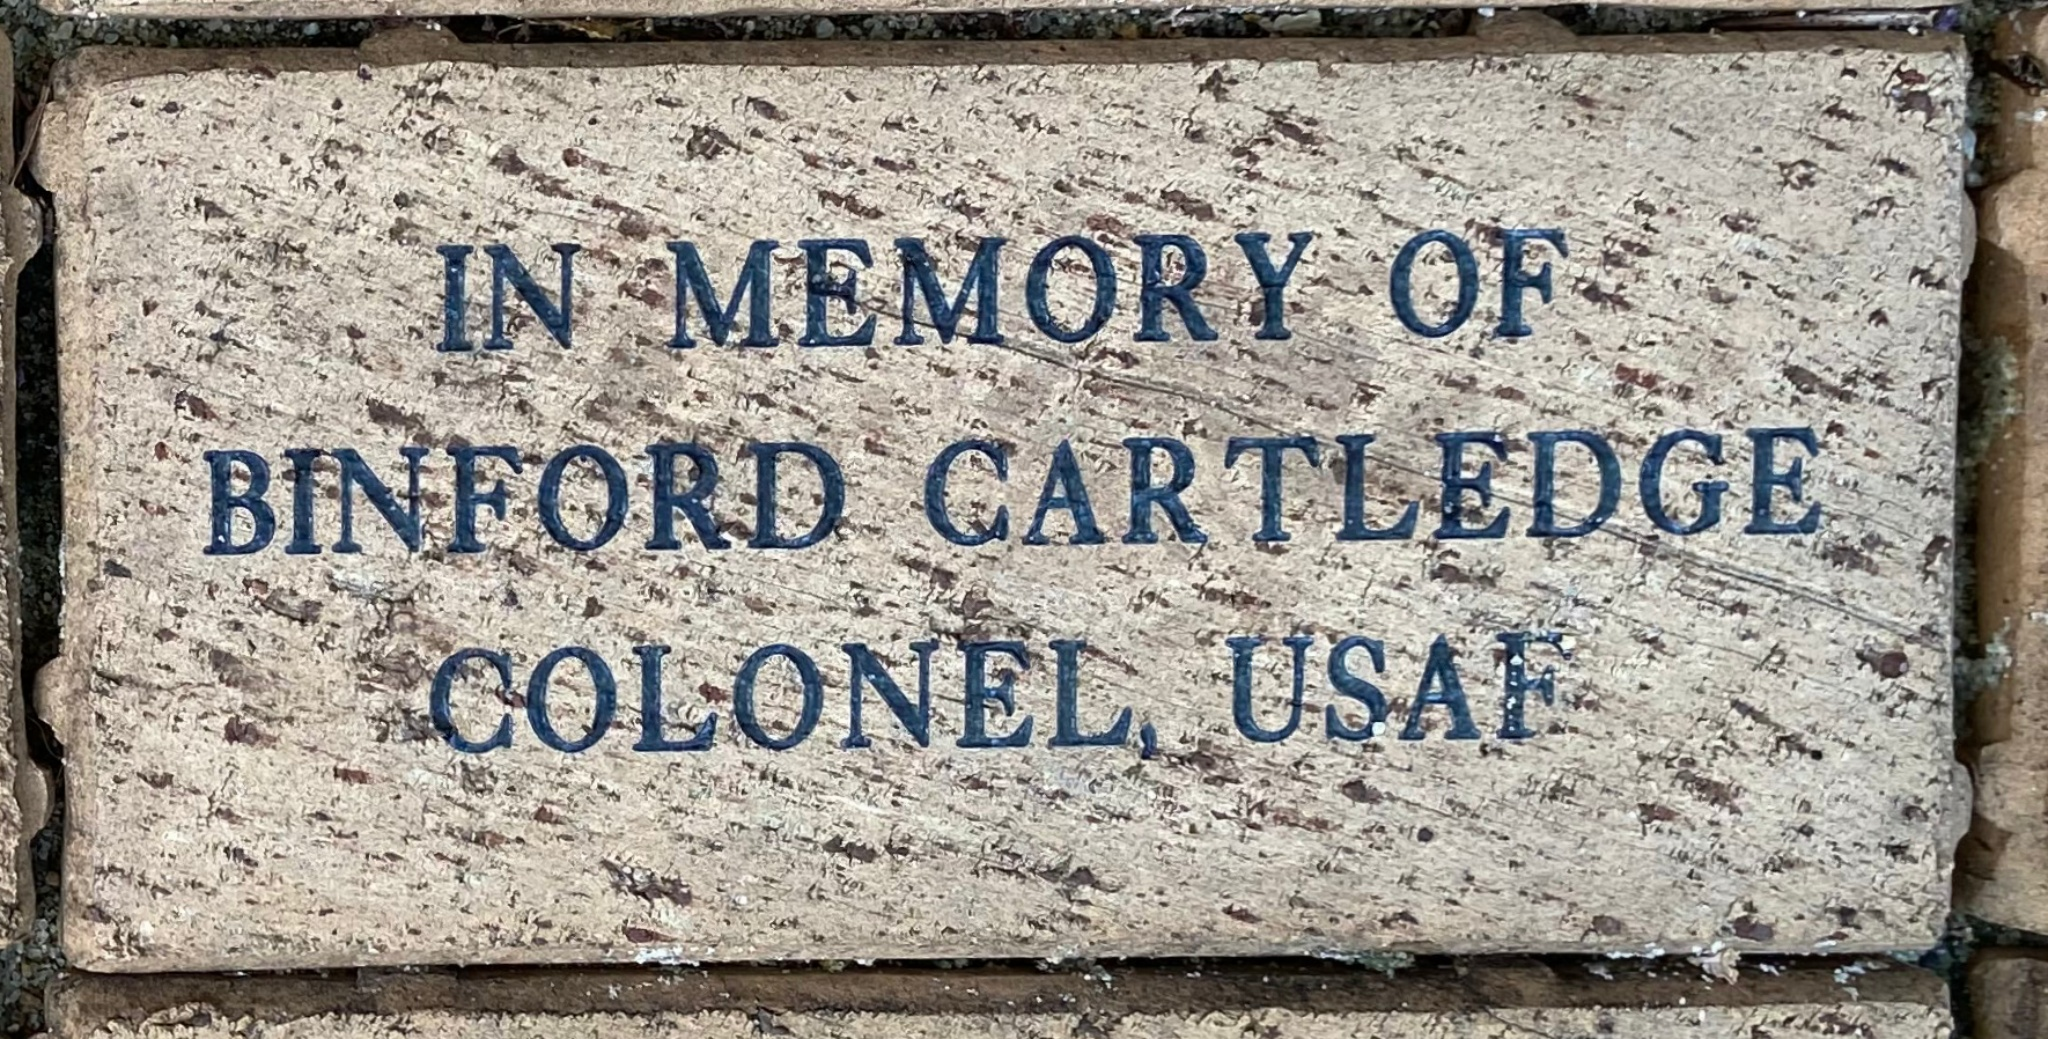 IN MEMORY OF  BINFORD CARTLEDGE COLONEL, USAF